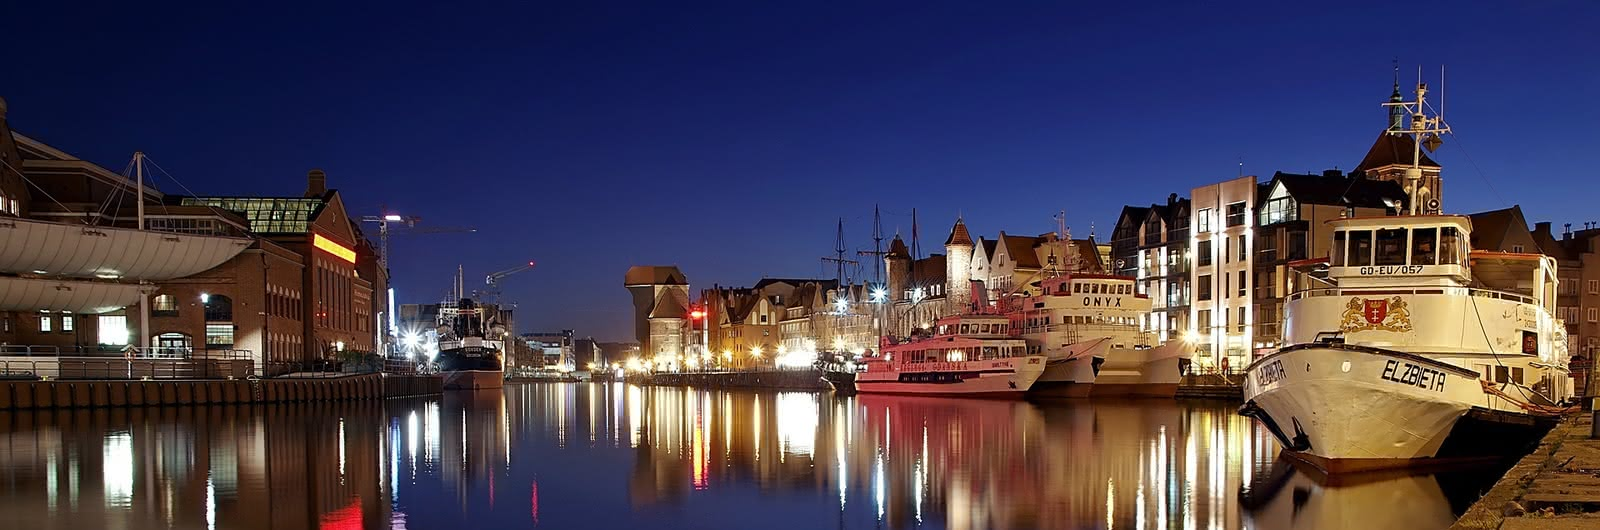 gdansk city header